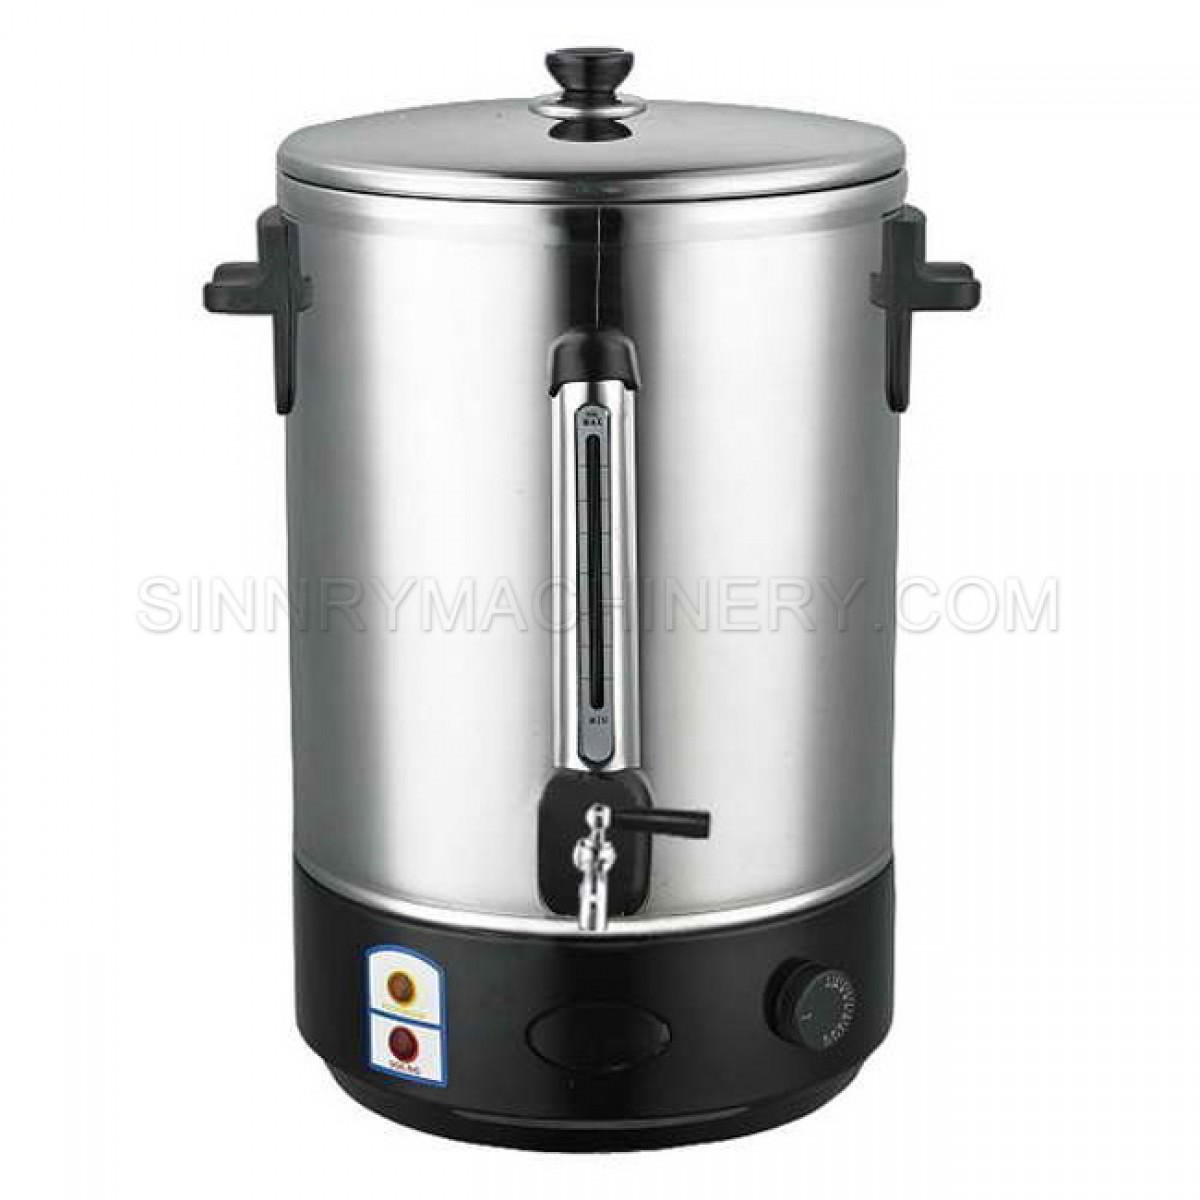 Delighted Commercial Hot Water Boiler Gallery - Electrical System ...